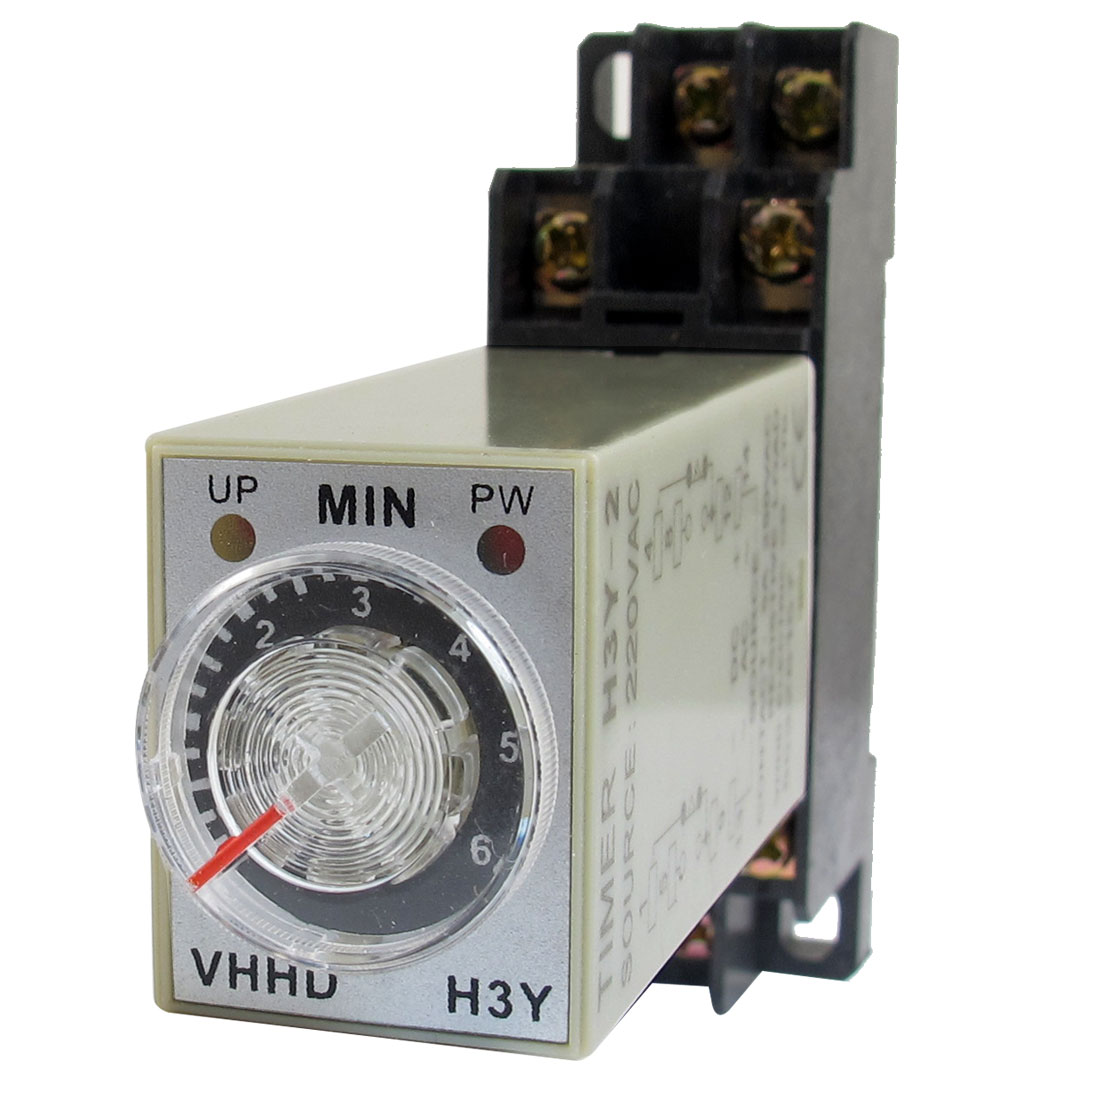 AC 220V 6Min 0-6 Minute Delay Timer Time Relay H3Y-2 + 8 Pin DIN Rail Socket